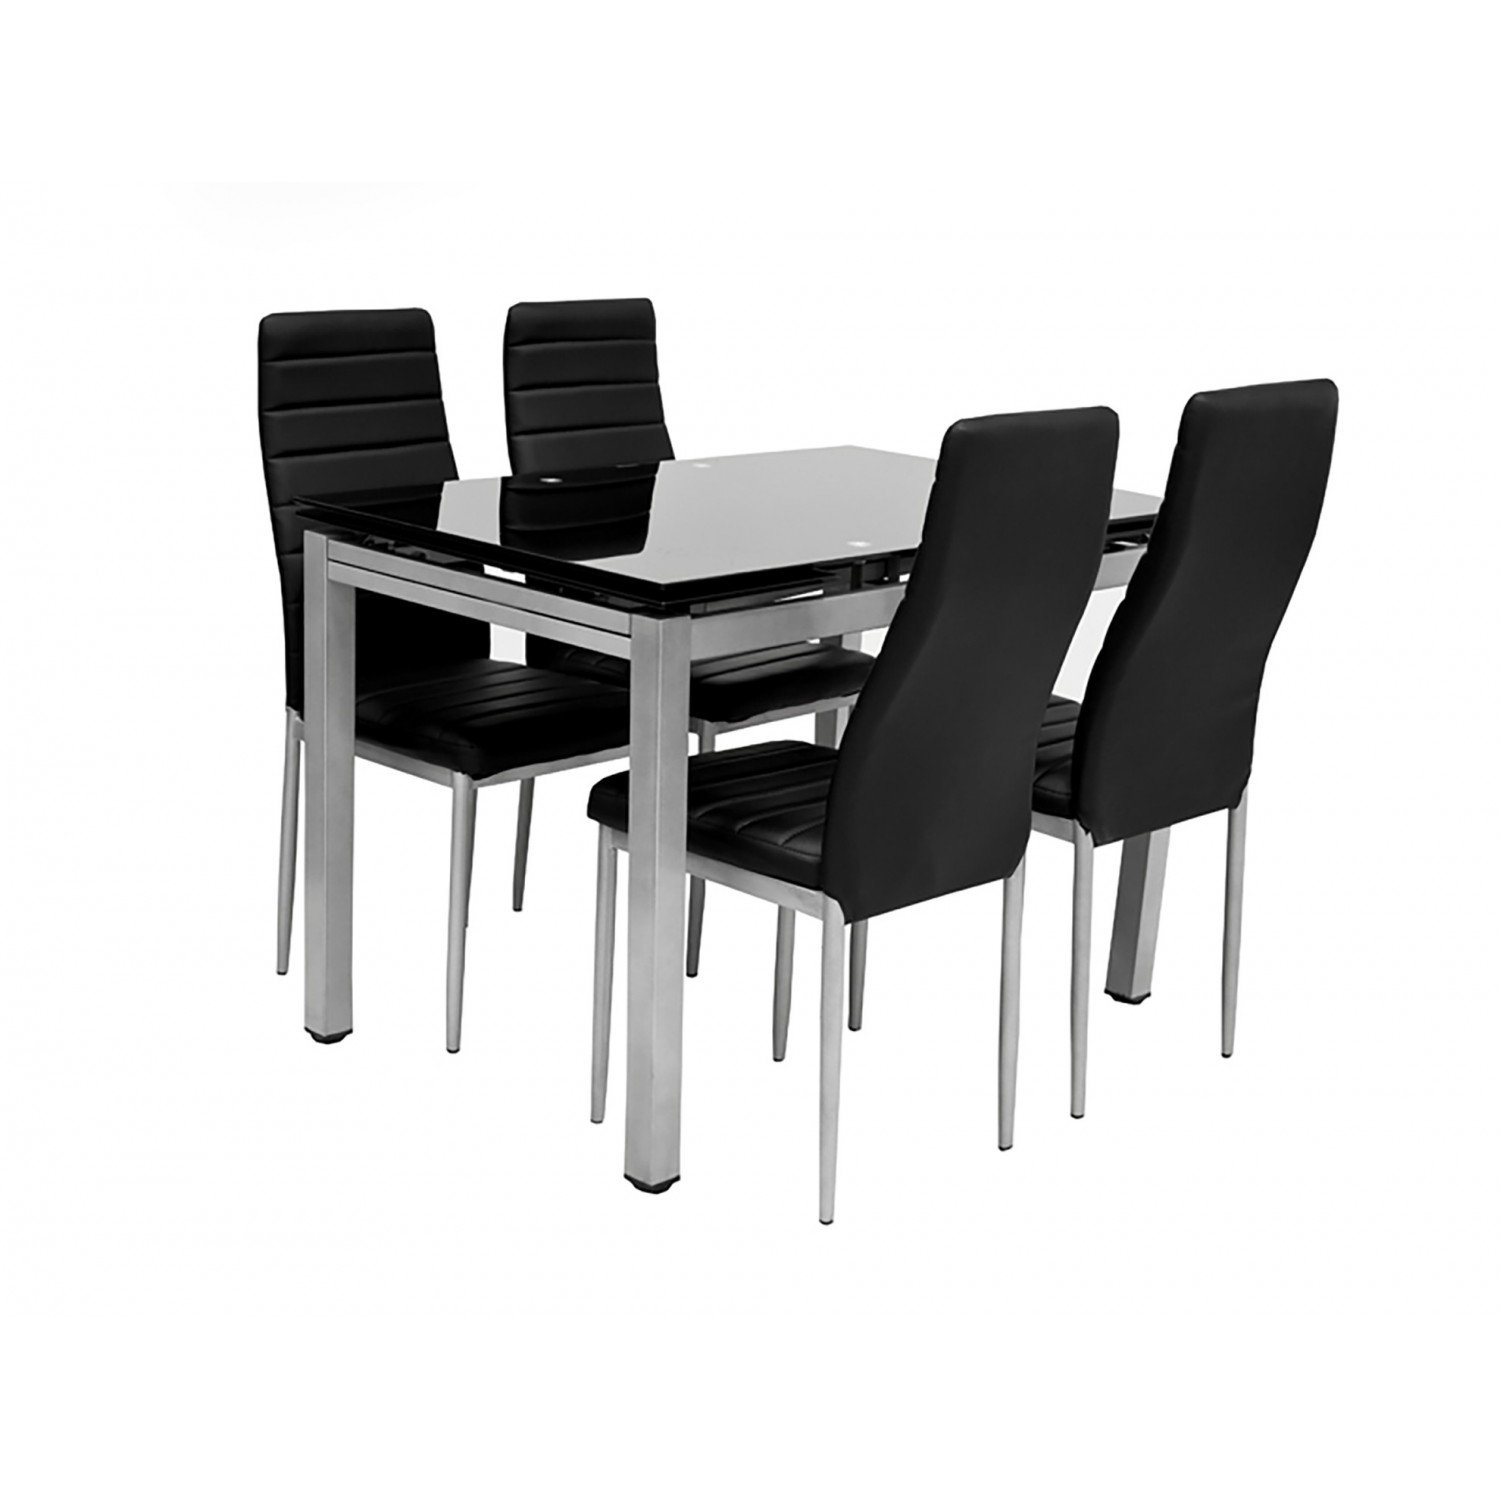 Awesome table et chaises de cuisine noire contemporary for Ensemble table extensible et chaise